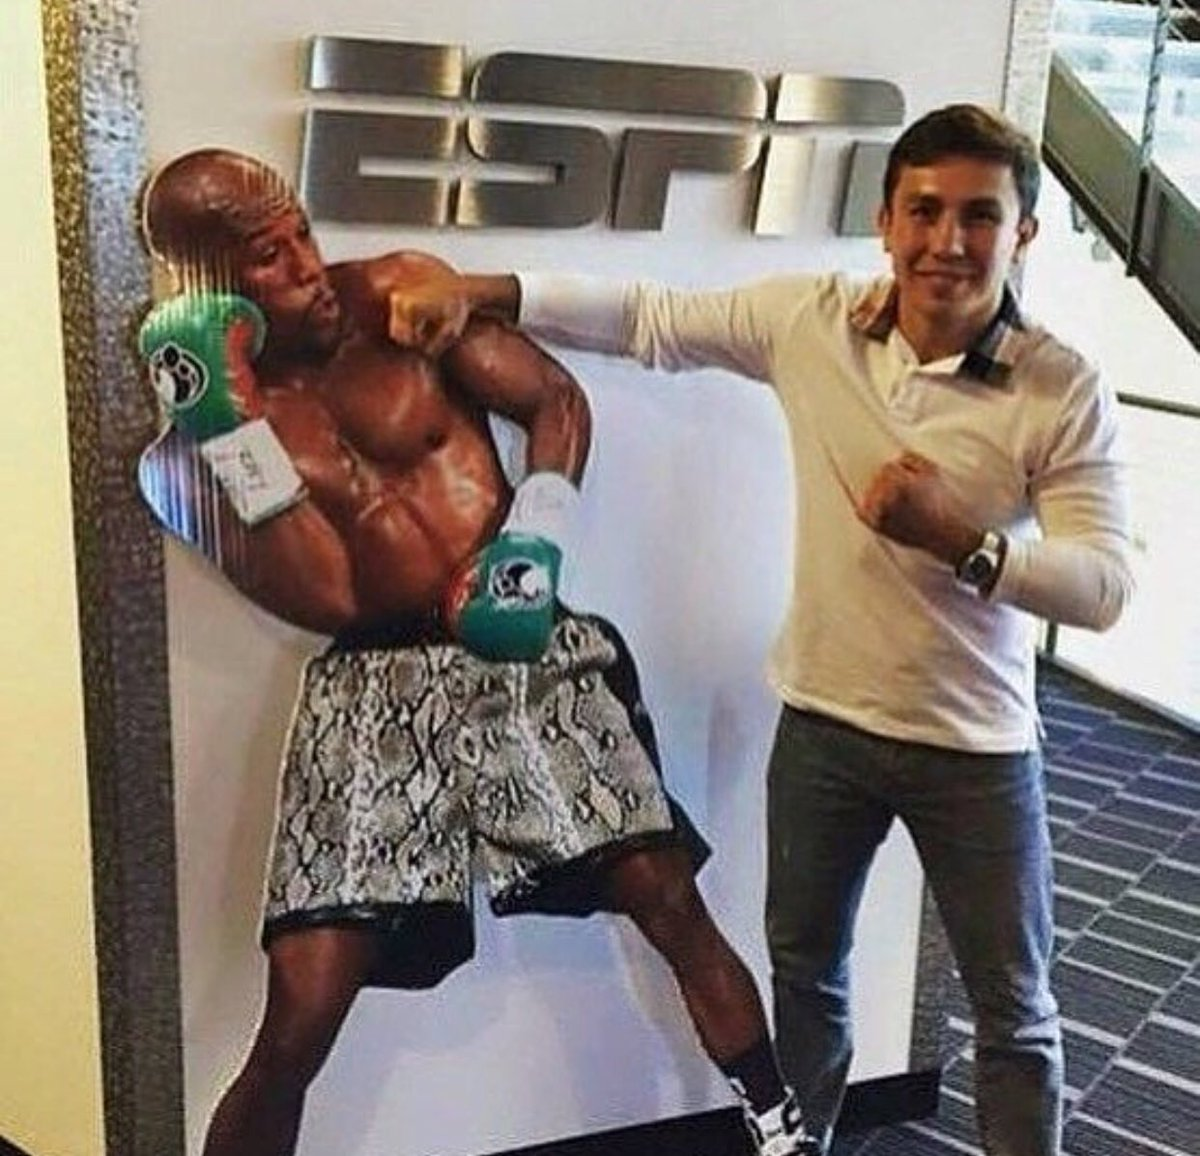 Lol GGG Ready for a big fight, ???? https://t.co/vaM1MkdgOT